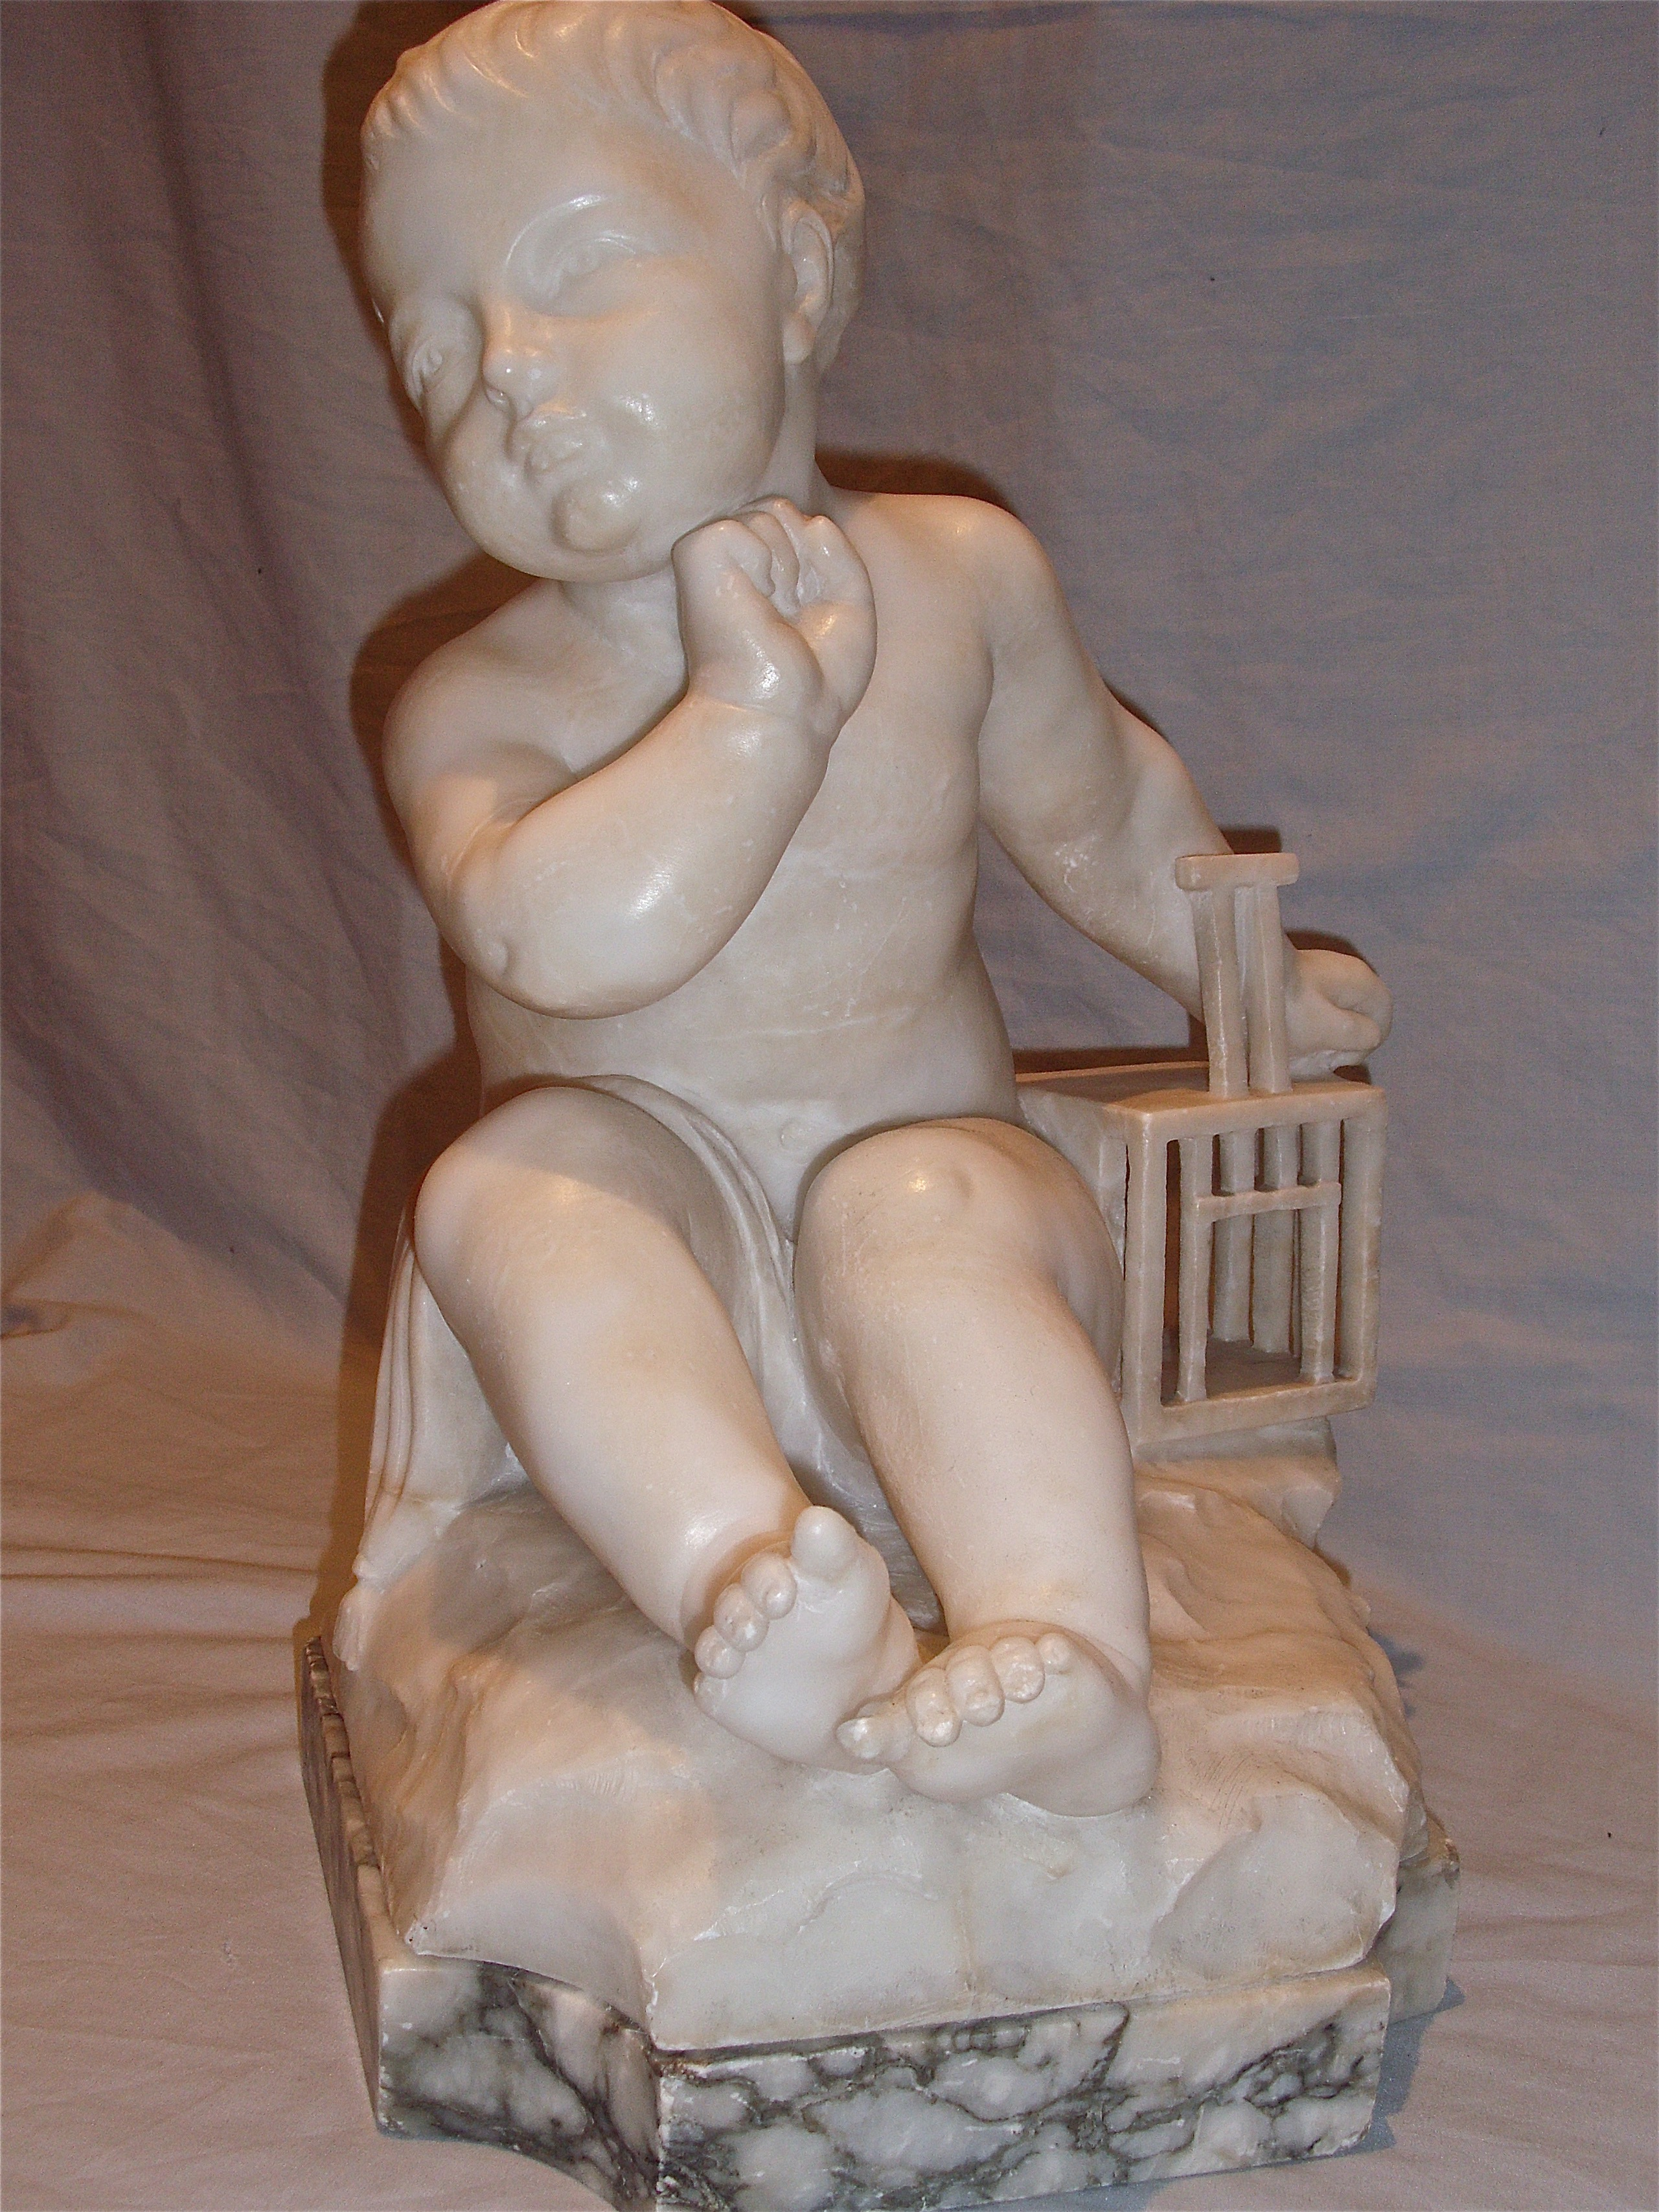 Alabaster sculpture of a Boy with Birdcage.